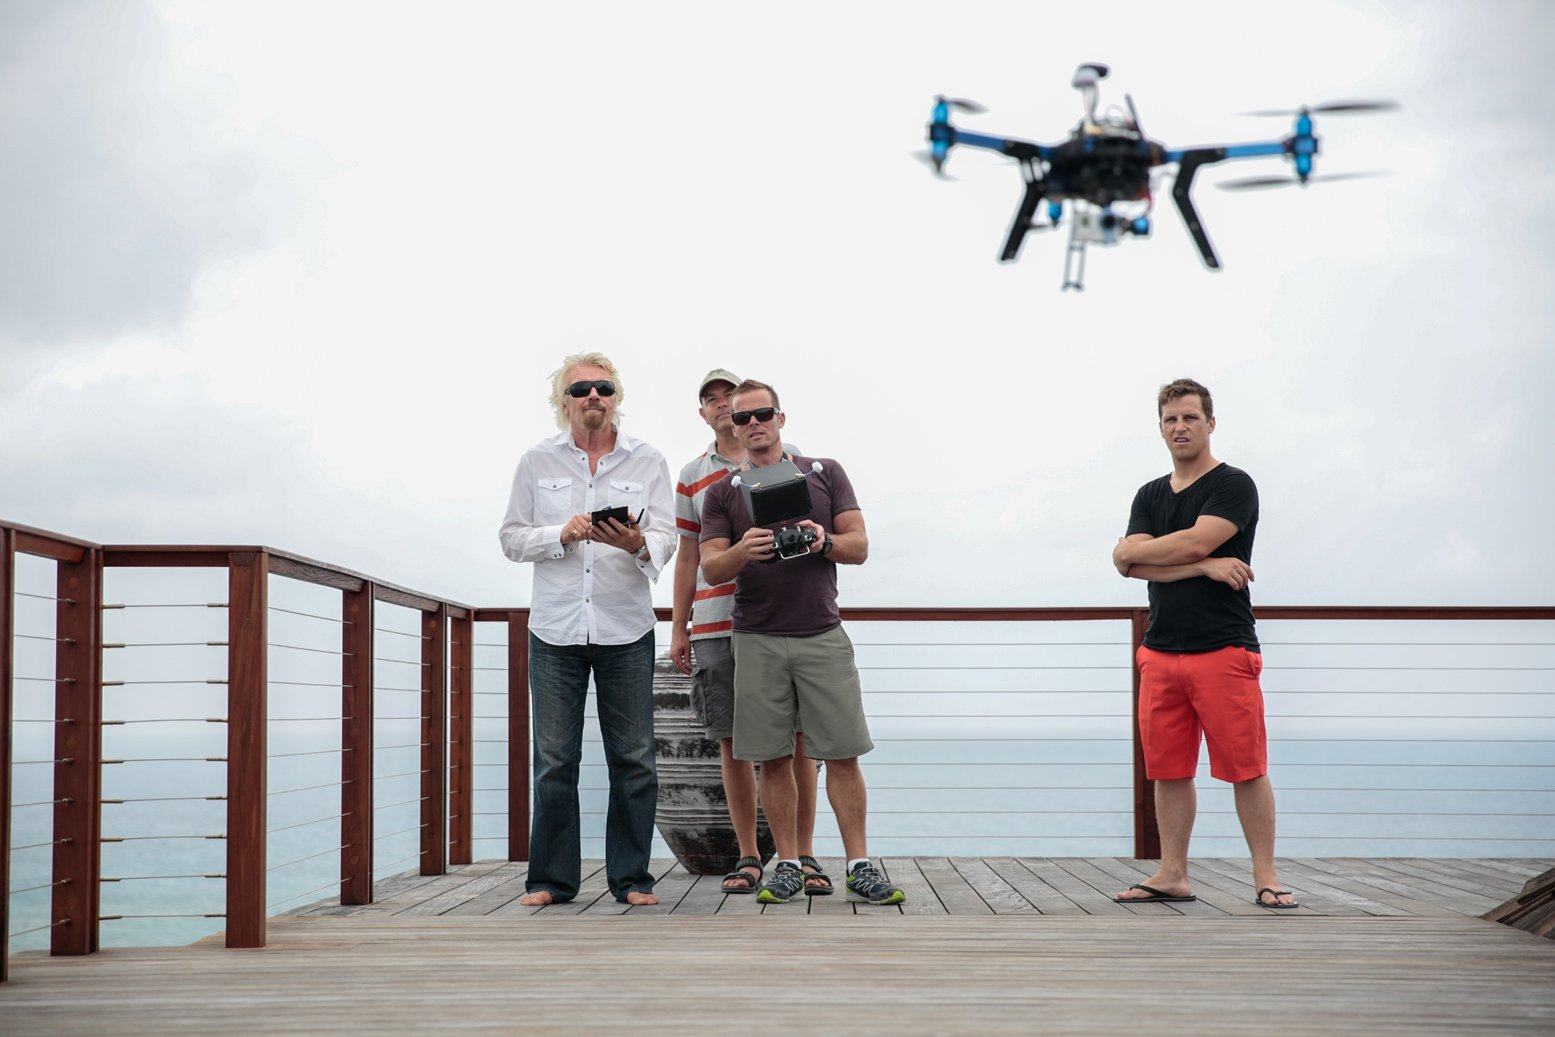 men-and-drone-in-the-air1500px.jpg